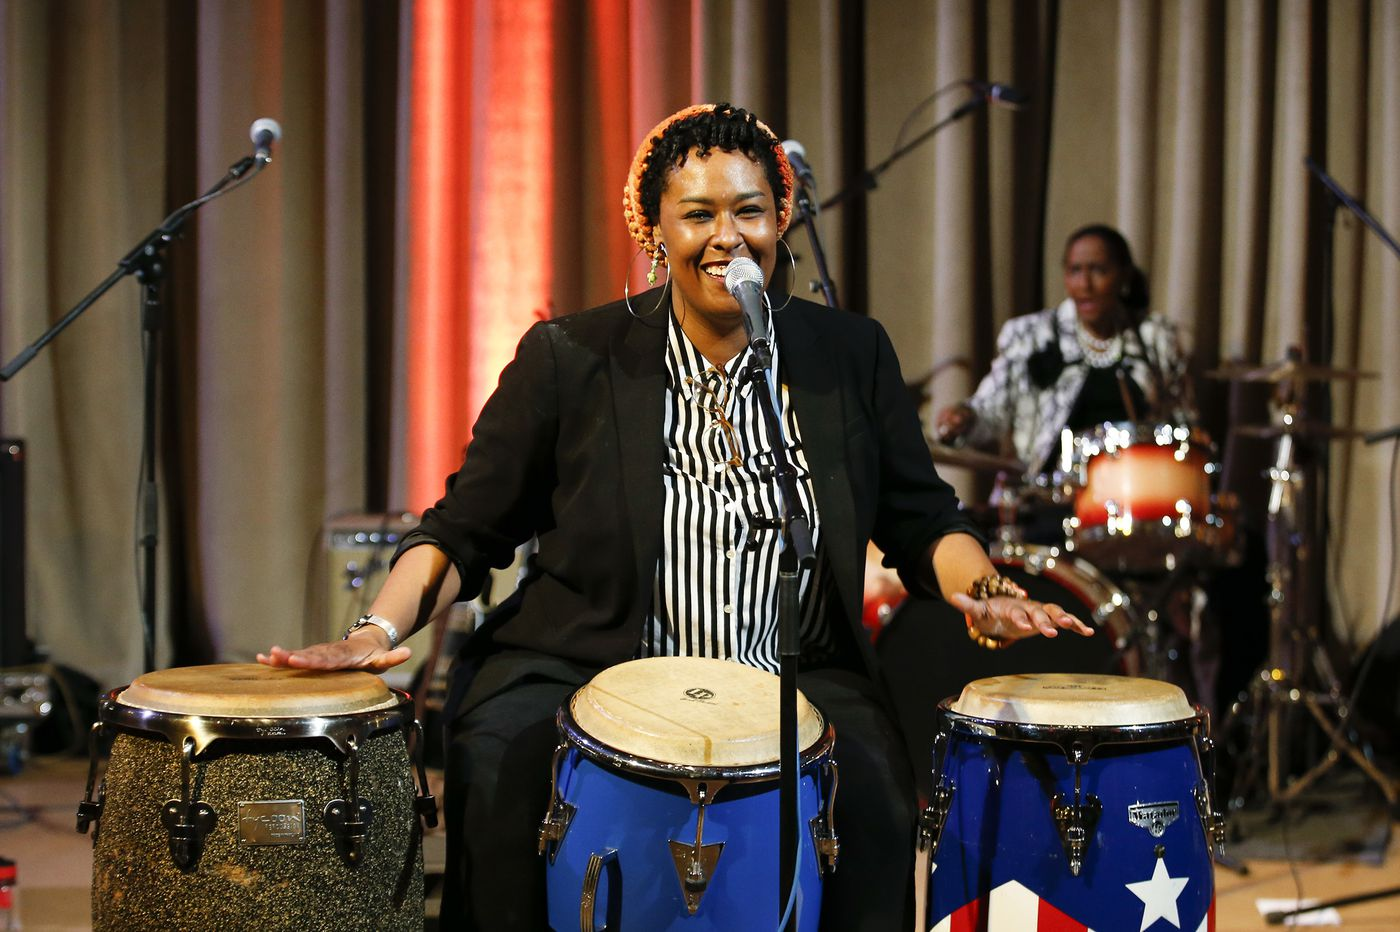 At Drum Like a Lady, anyone can tap into the power of percussion